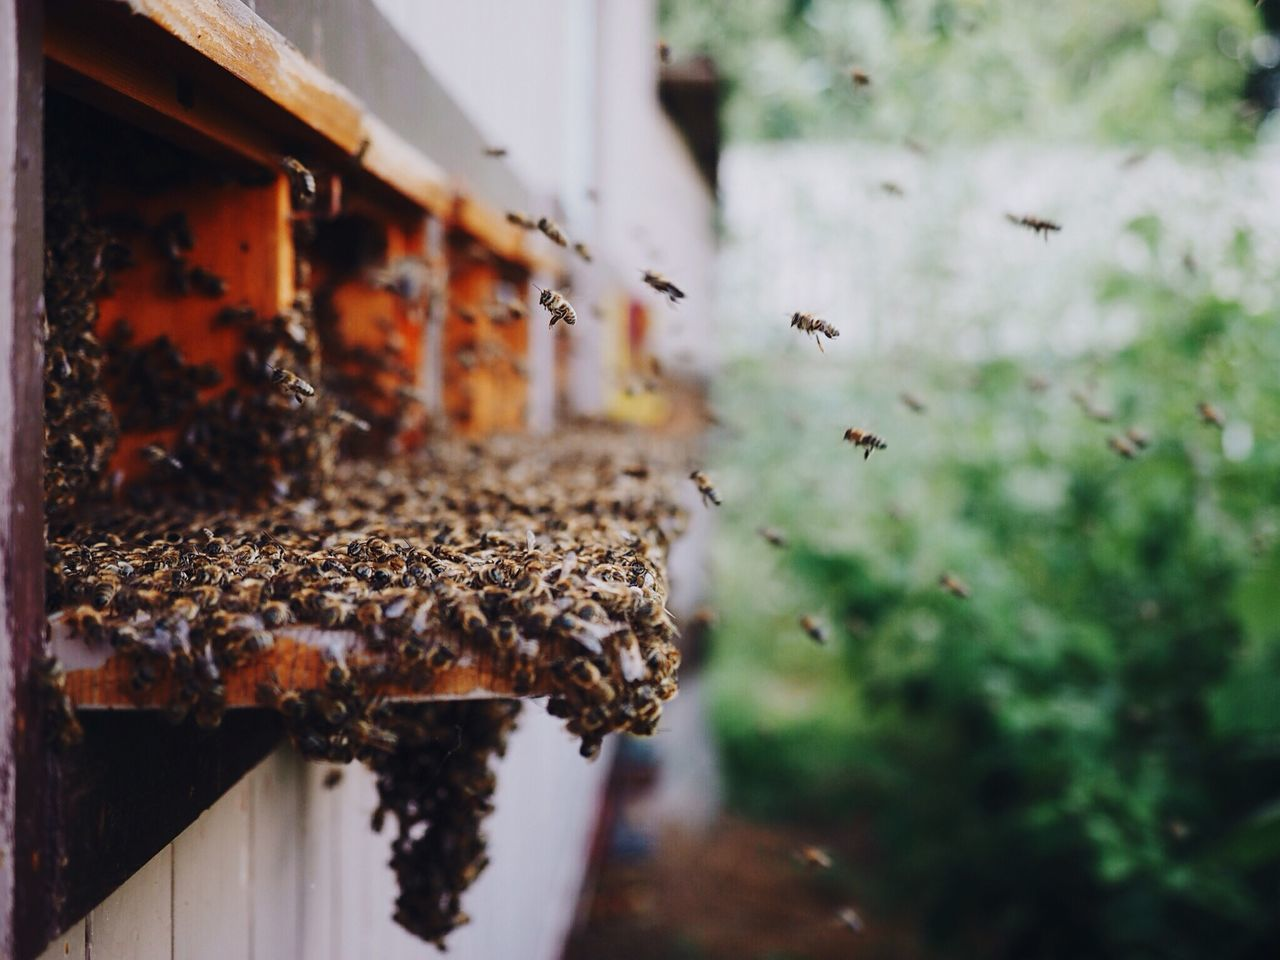 The bees are masters in community work: everyone has its own important job and togheter they build a great performing community bee Collected Community EyeEm Nature Lover From My Point Of View Nature Working popular photos Summer Views Deceptively Simple What I Value My Best Photo 2015